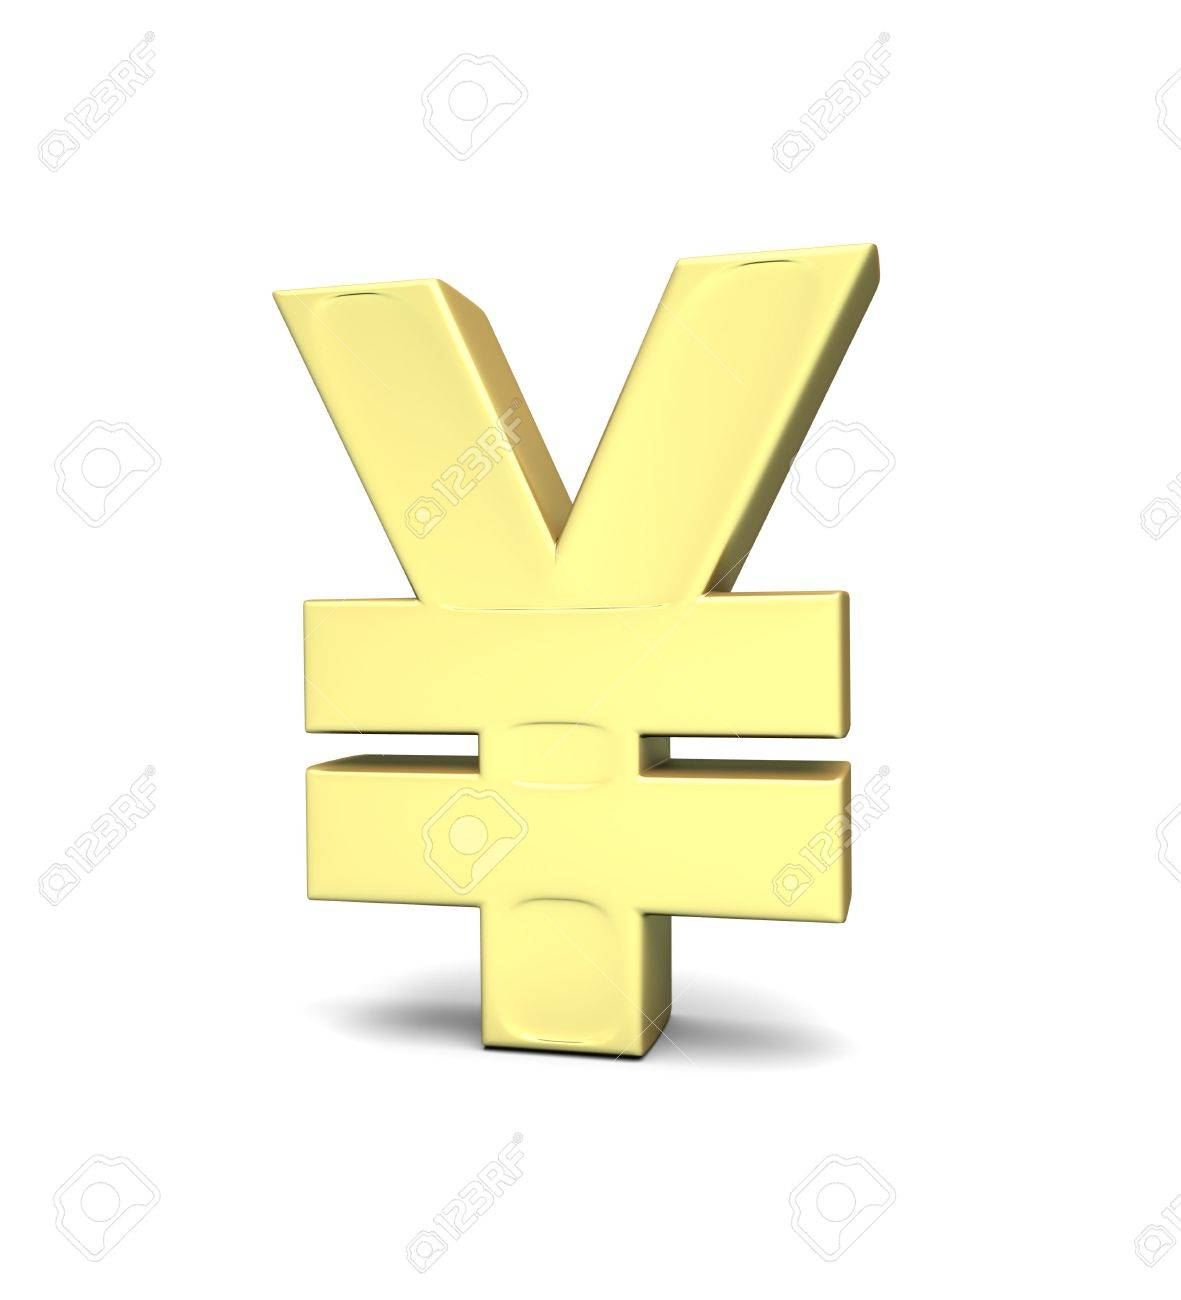 Yen currency symbol on white background with clipping path 3d yen currency symbol on white background with clipping path 3d render stock photo 3224110 biocorpaavc